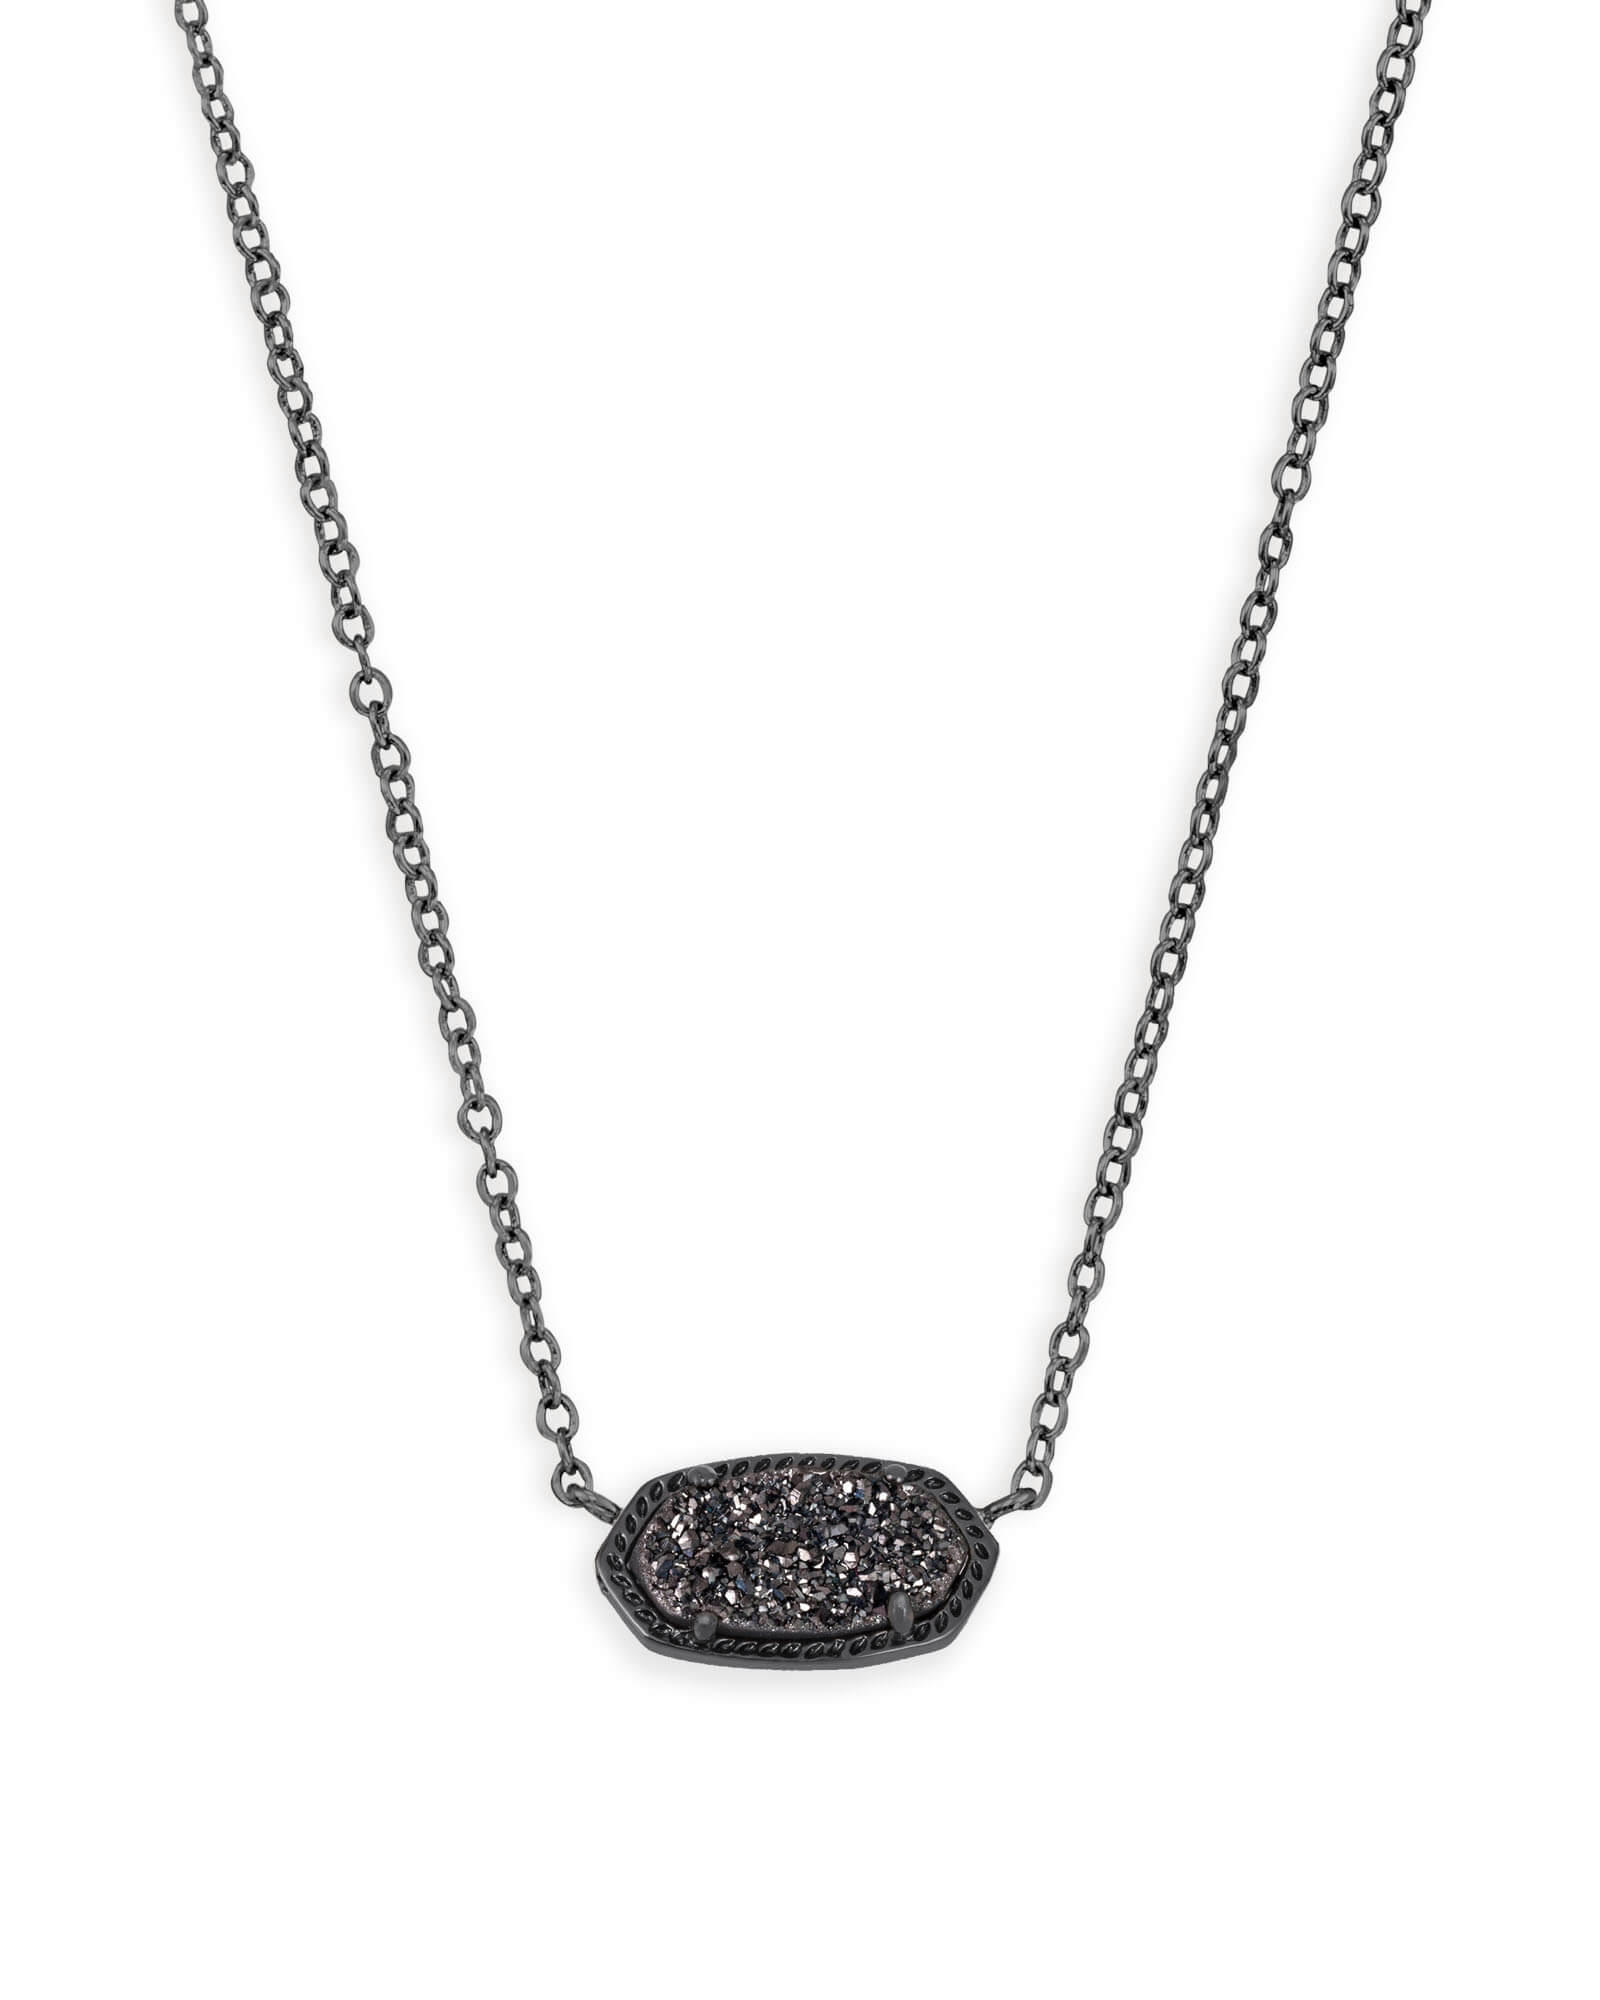 Elisa gunmetal pendant necklace in black kendra scott elisa pendant necklace in black drusy aloadofball Image collections